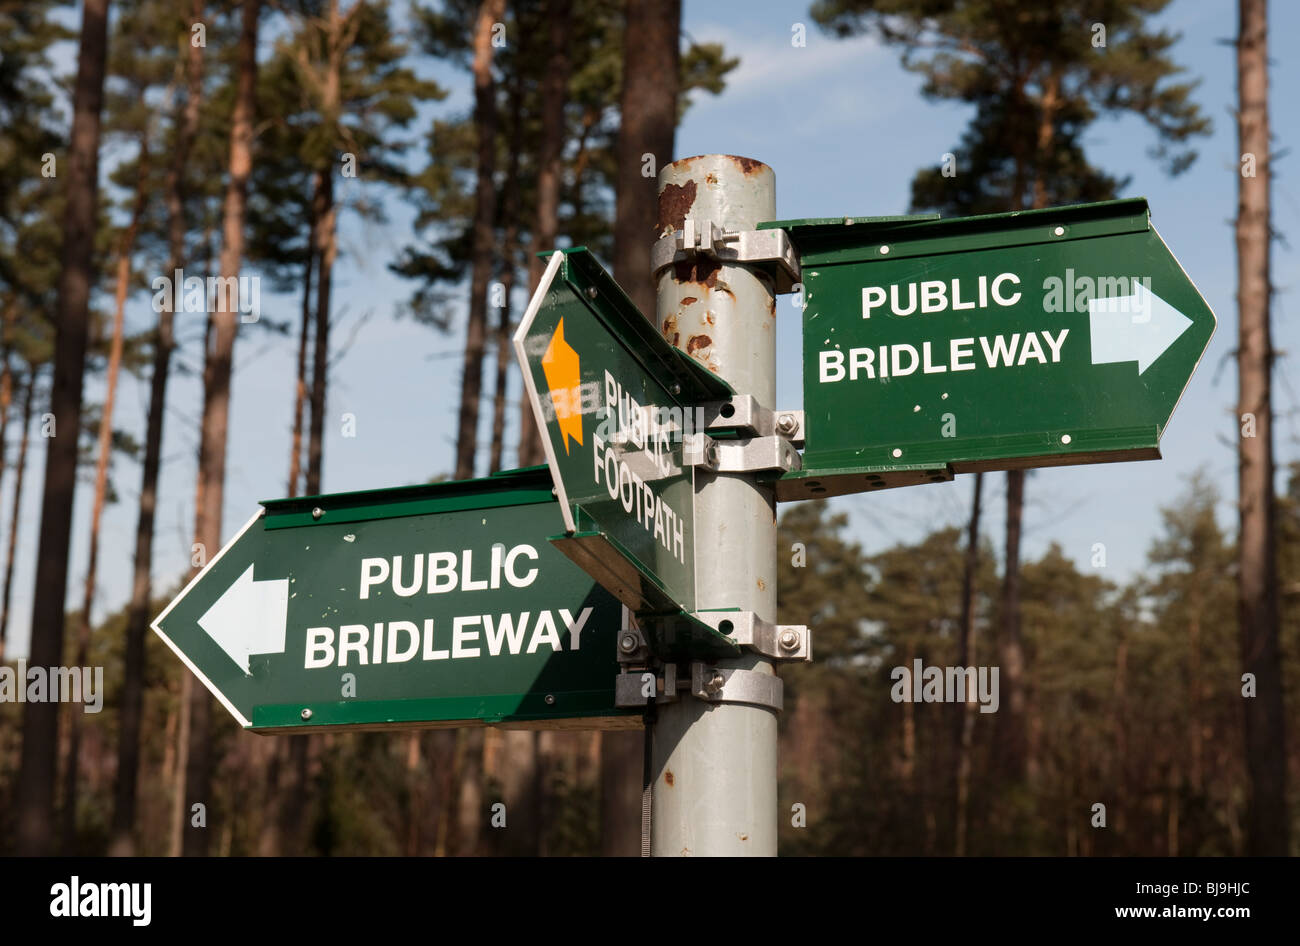 Public Footpath and Bridleway sign in Crowthorne Wood - Stock Image